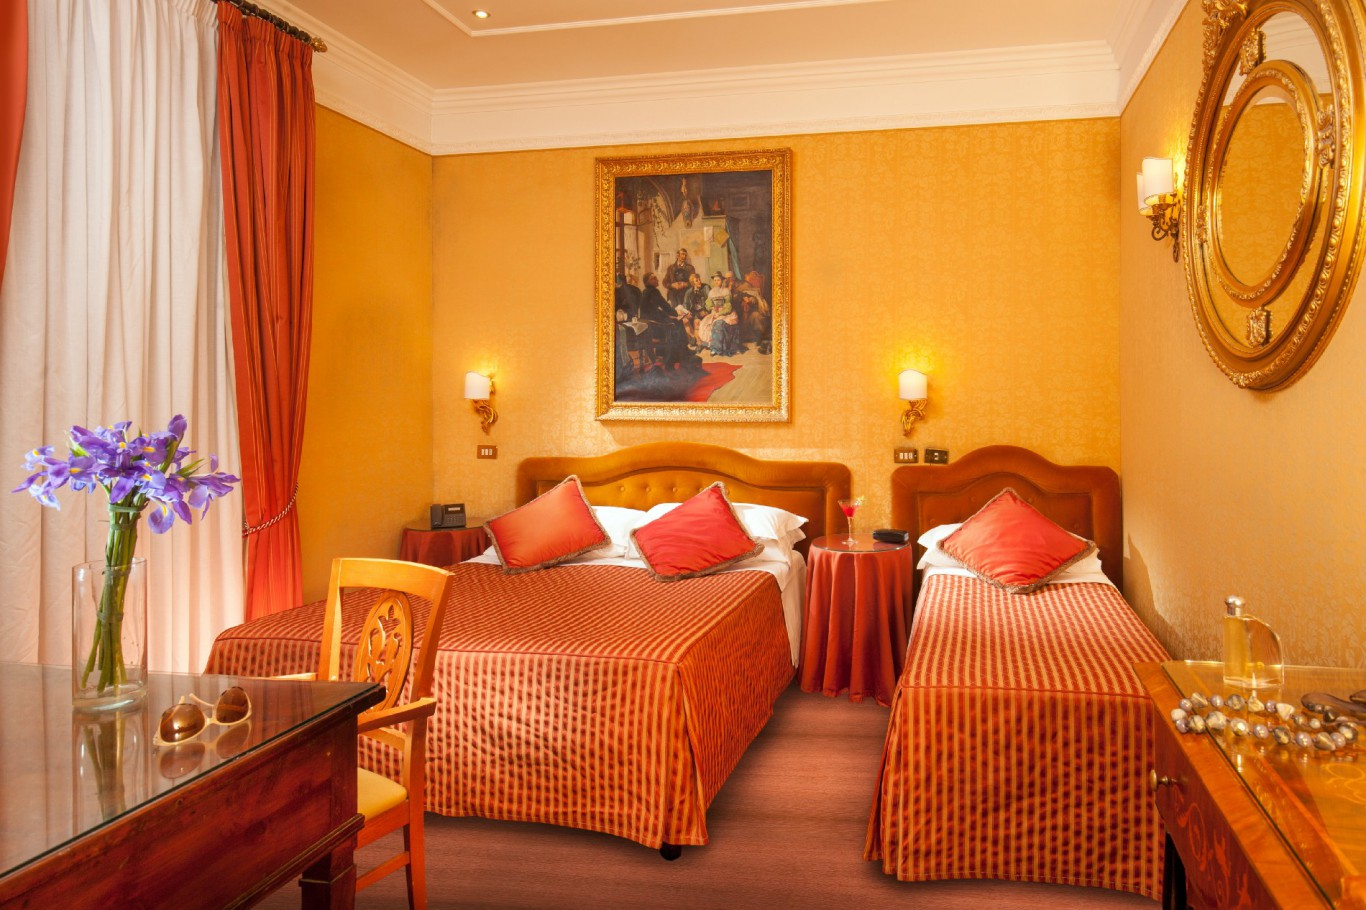 Hotel-Morgana-Rome-deluxe-room2